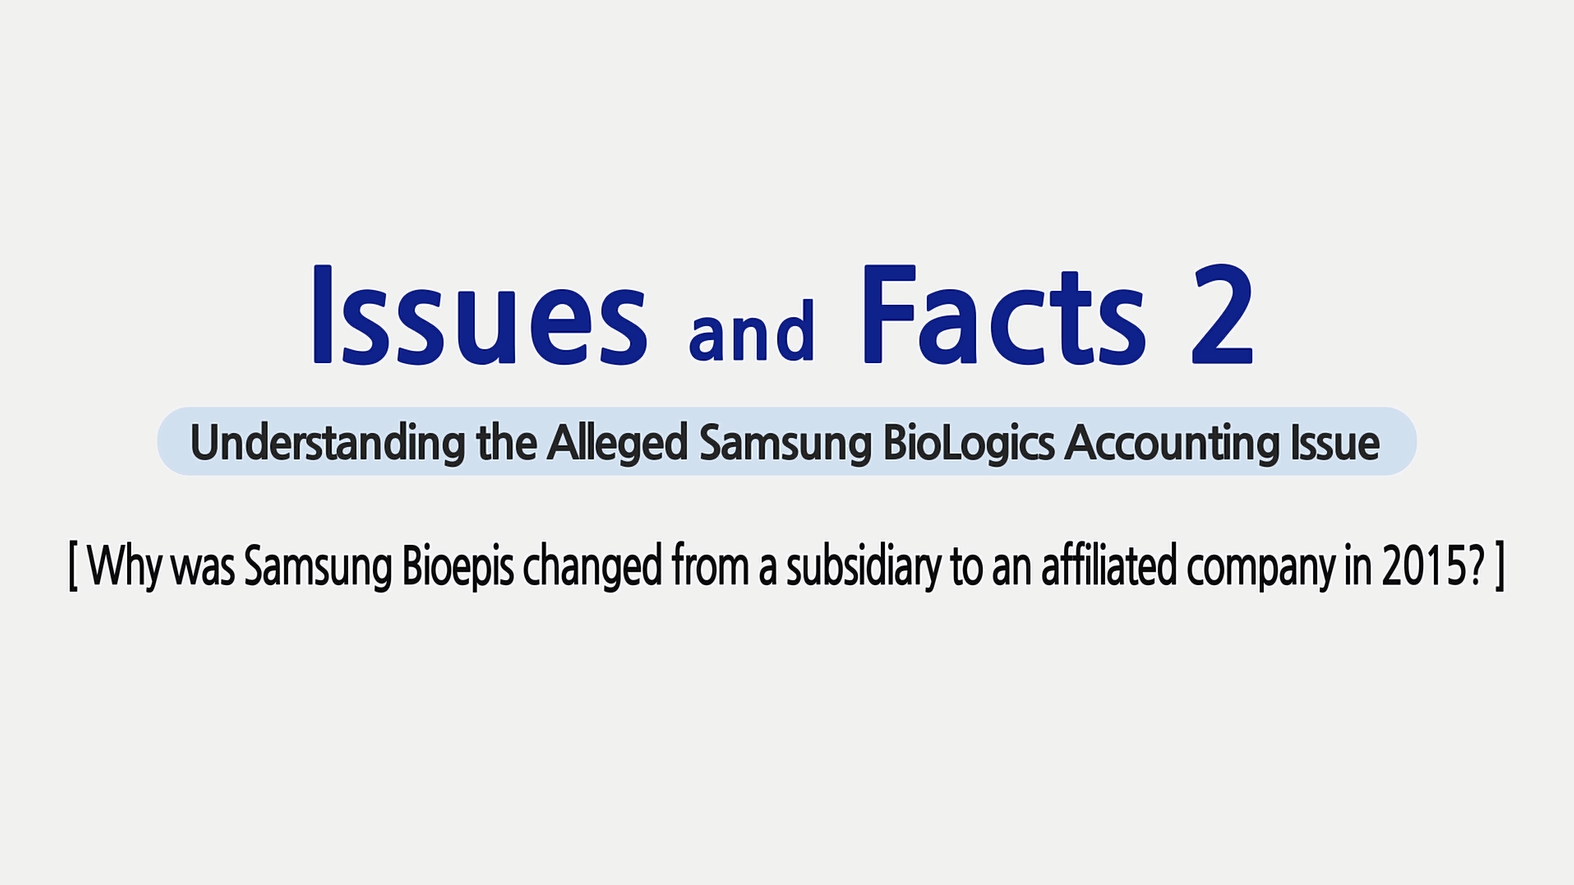 Issues and Facts 2 Understanding the Alleged Samsung BioLogics Accounting Issue [Why was Samsung Bioepis changed from a subsidiary to an affiliated company in 2015?]